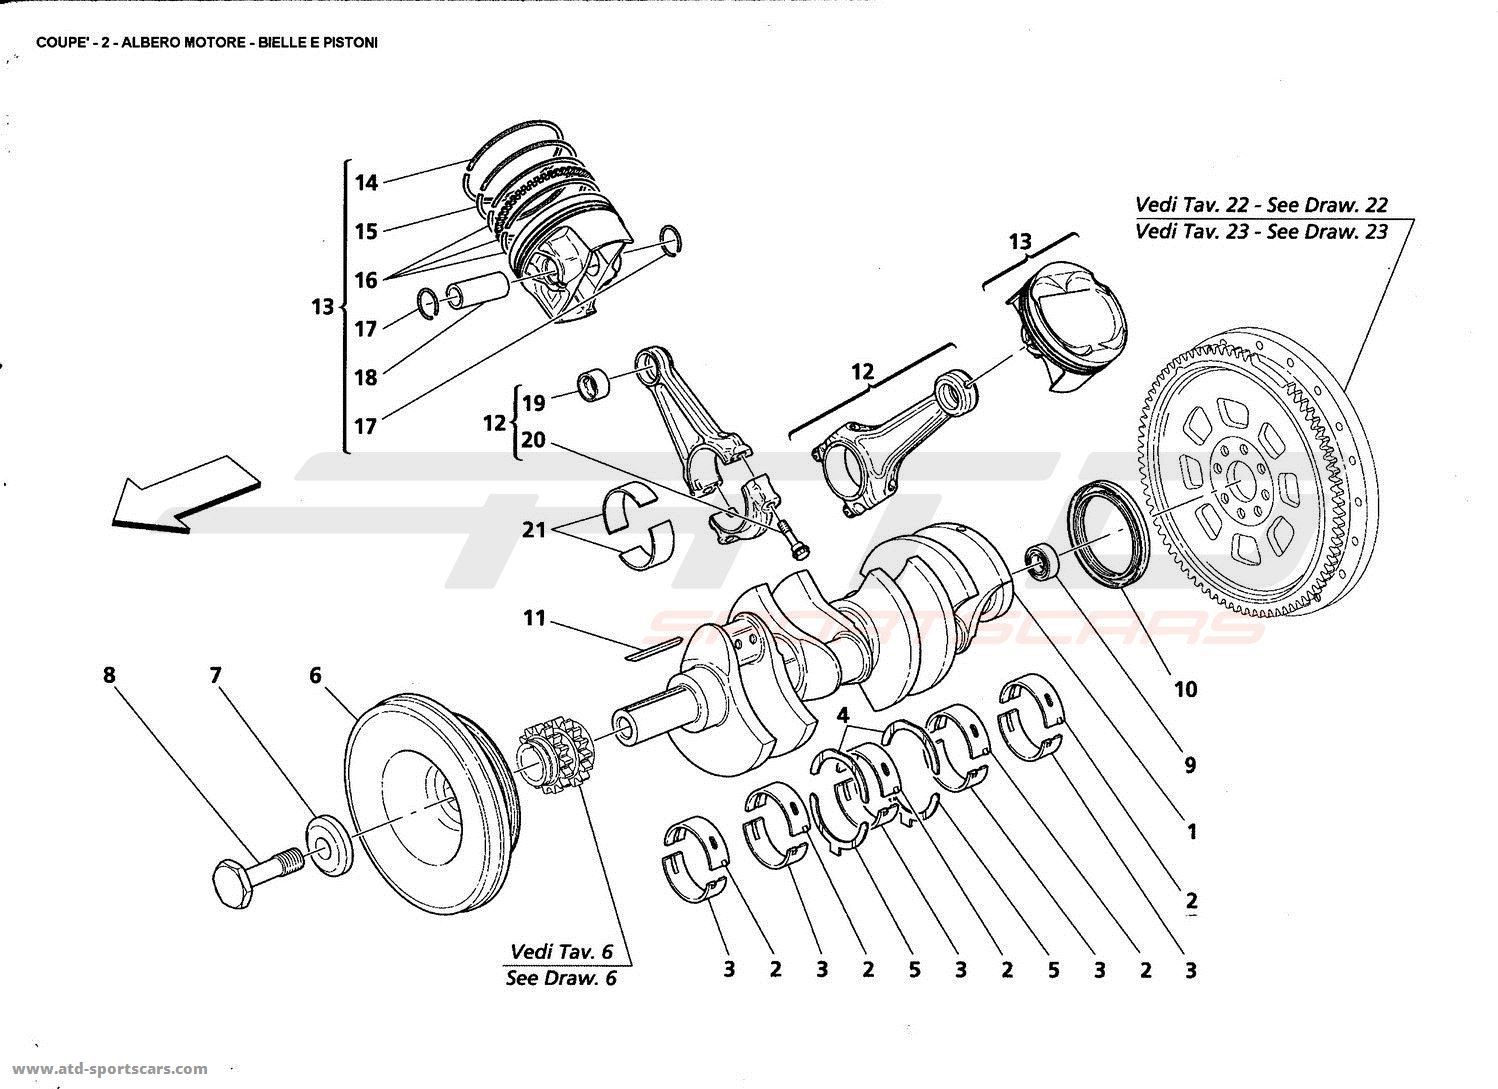 Maserati Gt Coupe Engine Parts At Atd Sportscars